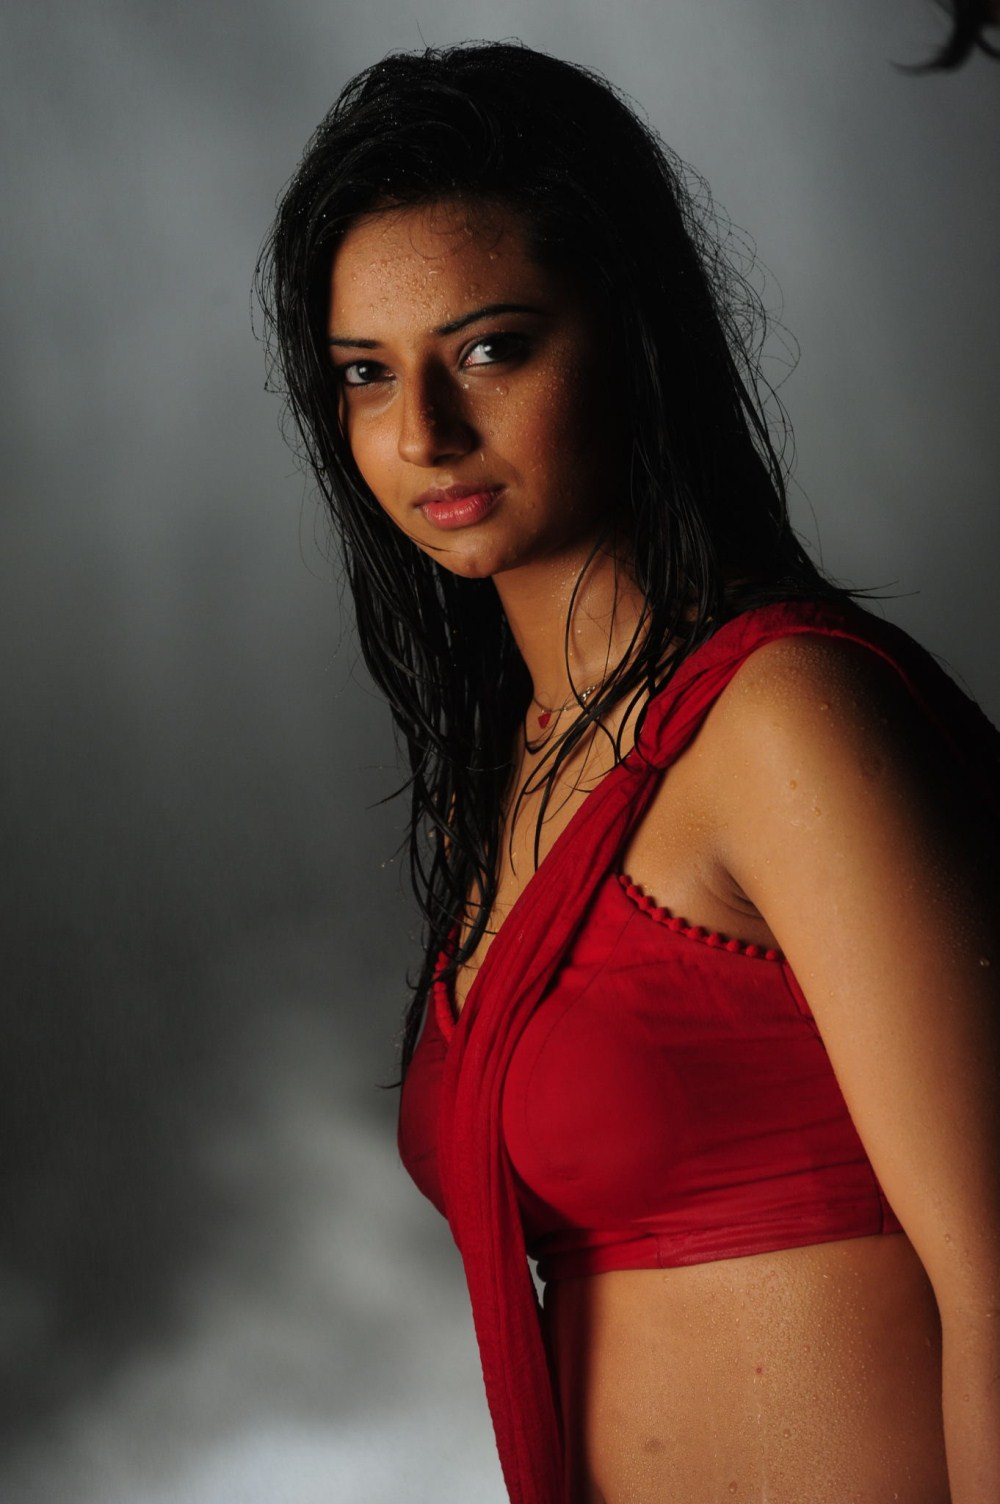 Telugu Cinema Wallpapers Isha Chawla Hot Wet Red Saree -2081